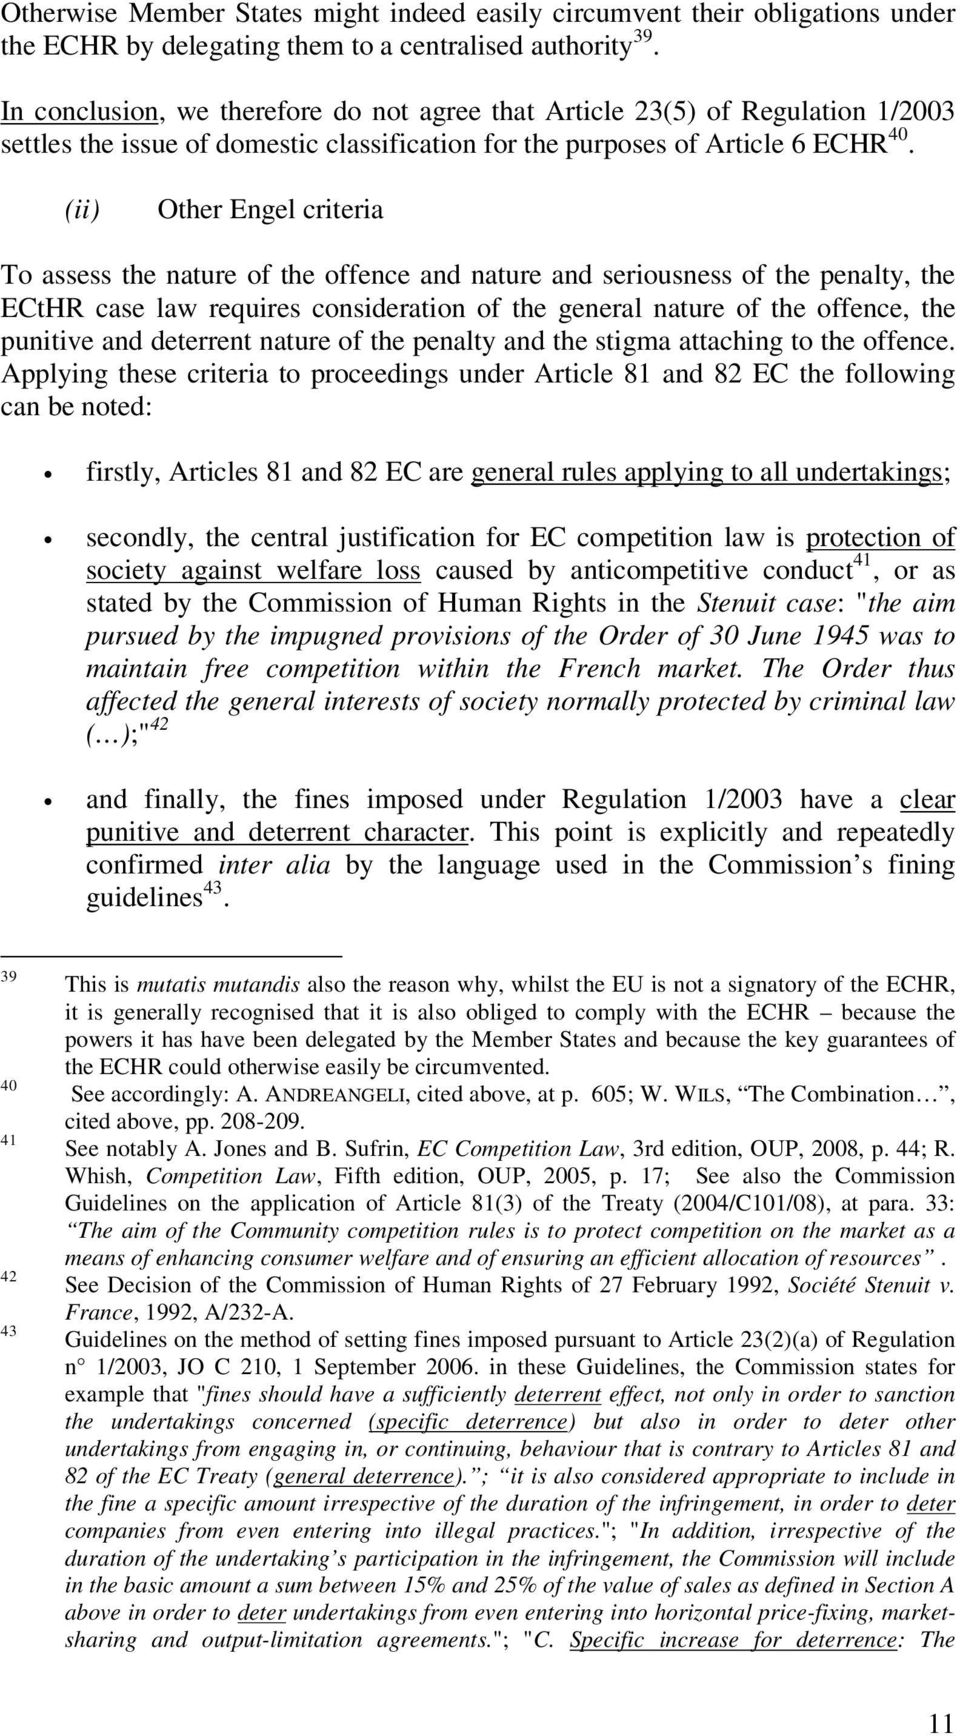 (ii) Other Engel criteria To assess the nature of the offence and nature and seriousness of the penalty, the ECtHR case law requires consideration of the general nature of the offence, the punitive